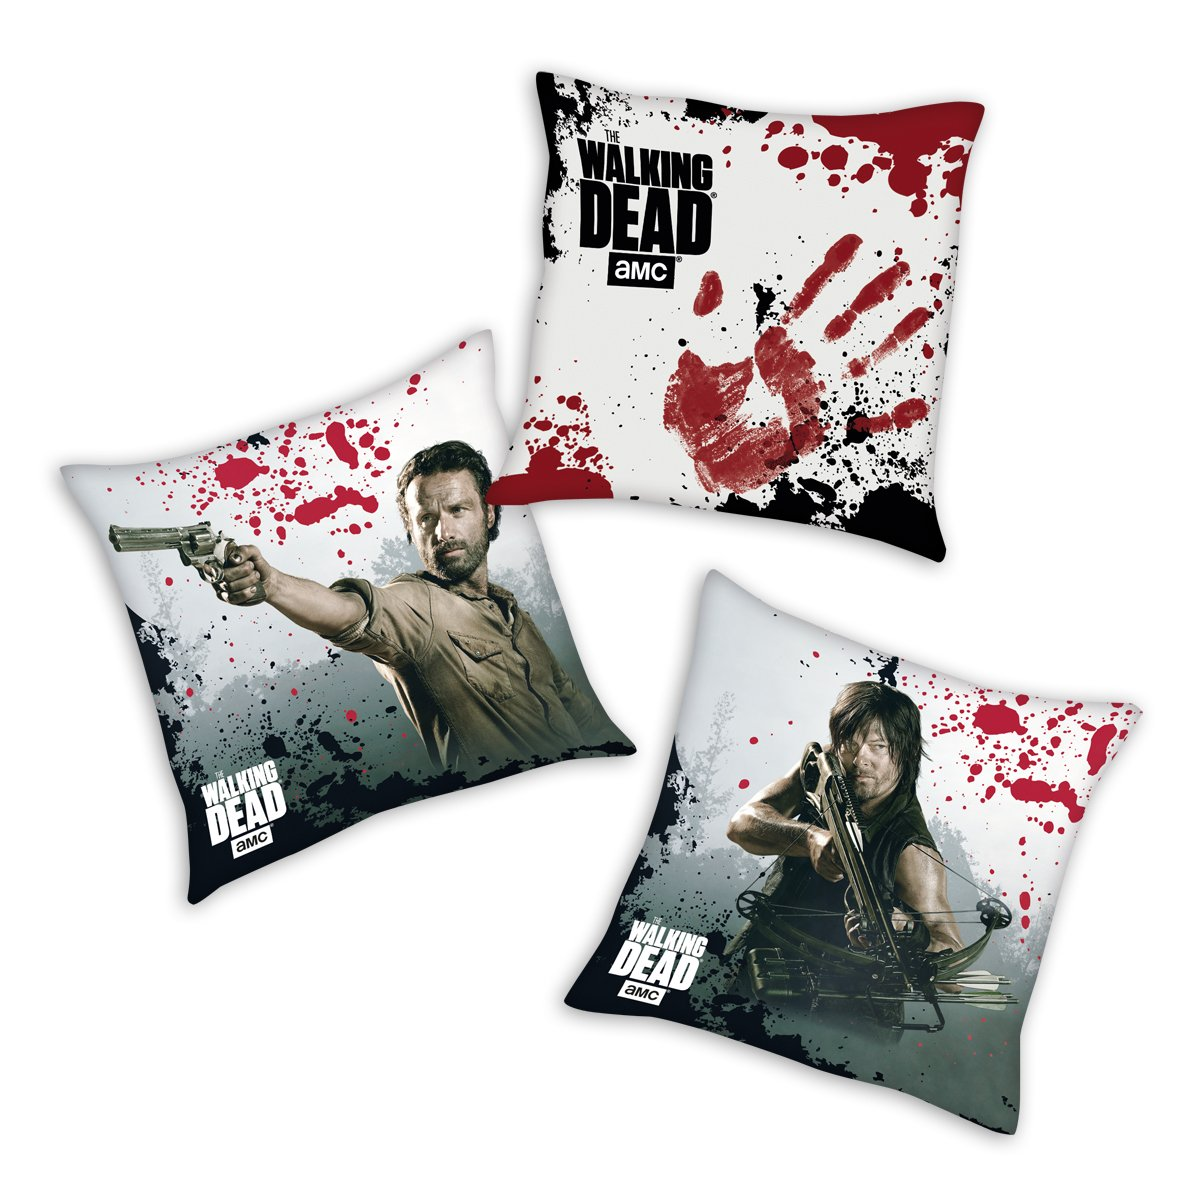 The Walking Dead Decorative Pillows 3-pc Set - Rick, Daryl, Bloody